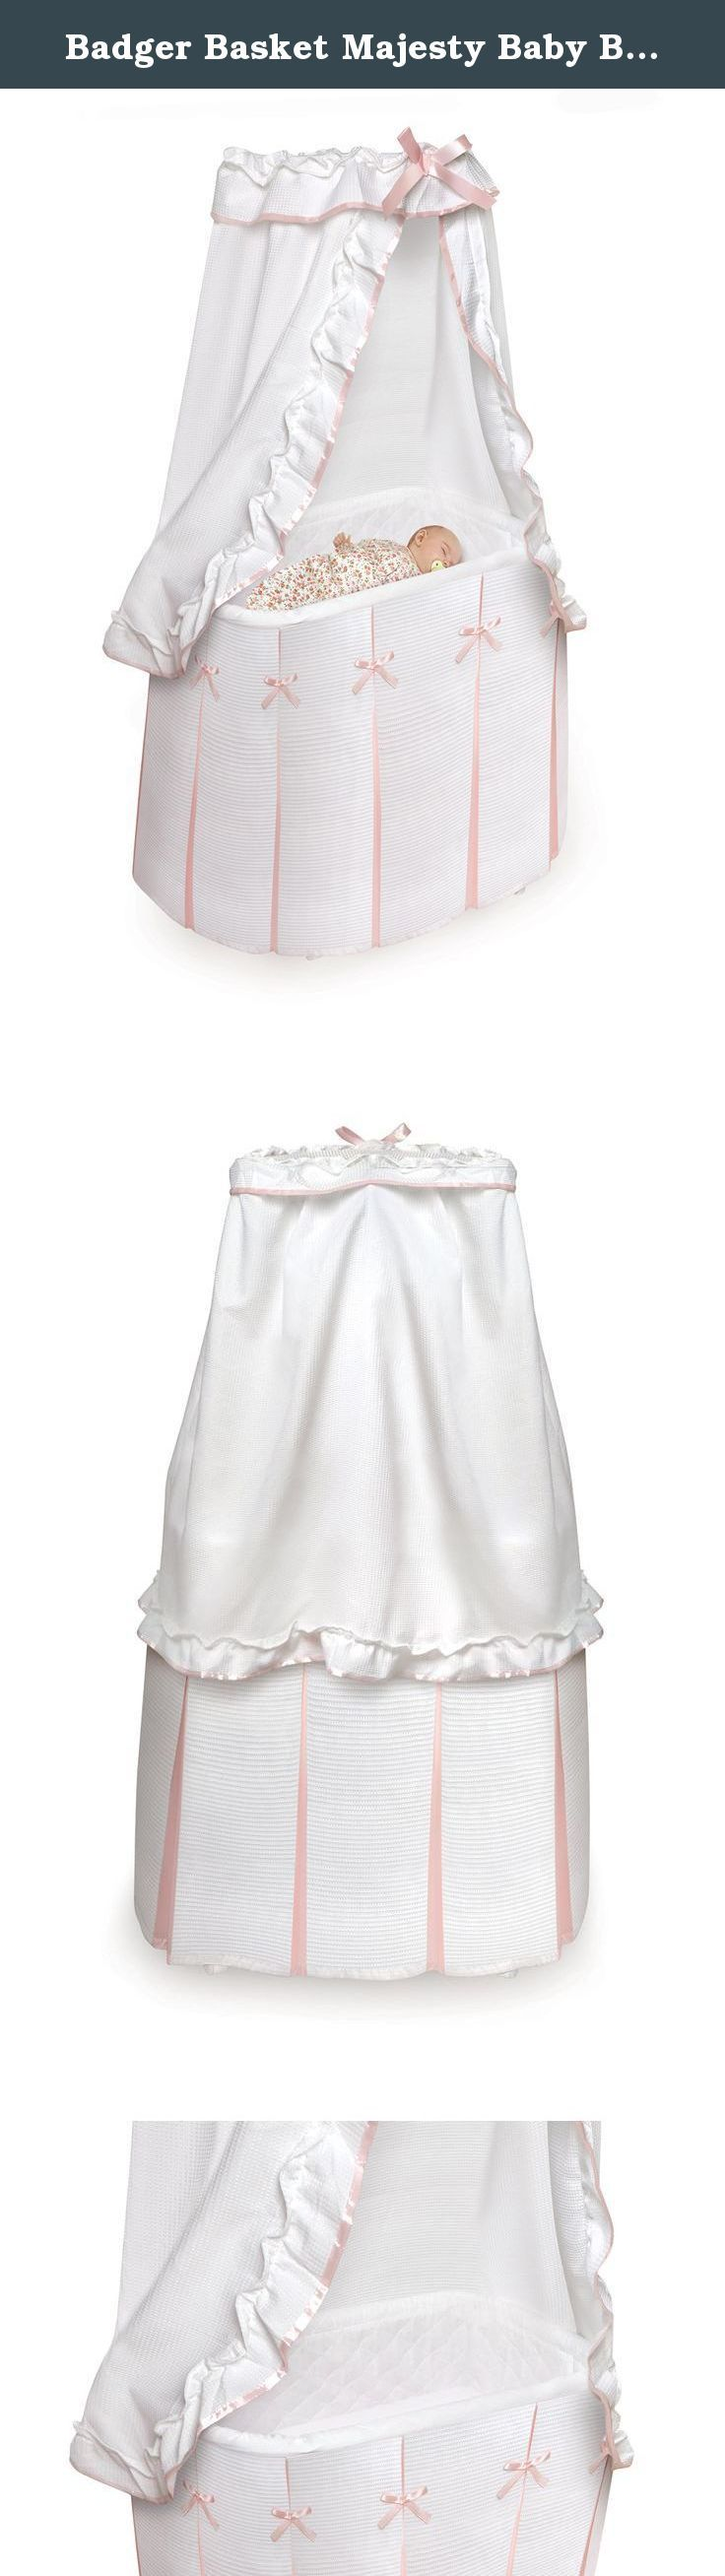 Badger Basket Majesty Baby Bassinet with Canopy, White/Pink. Badger Basket's Majesty Bassinet comes complete with everything your baby needs for the first few months of sleep. Cozy and comfortable, it features crisp bedding with just enough ruffles and bows. The wheels can be flipped up to rock the bassinet like a cradle! Metal frame assembles quickly and the bedding is easily attached. Complete bedding set (canopy, fitted sheet, and floor-length liner/skirt) and foam pad included. Mesh...